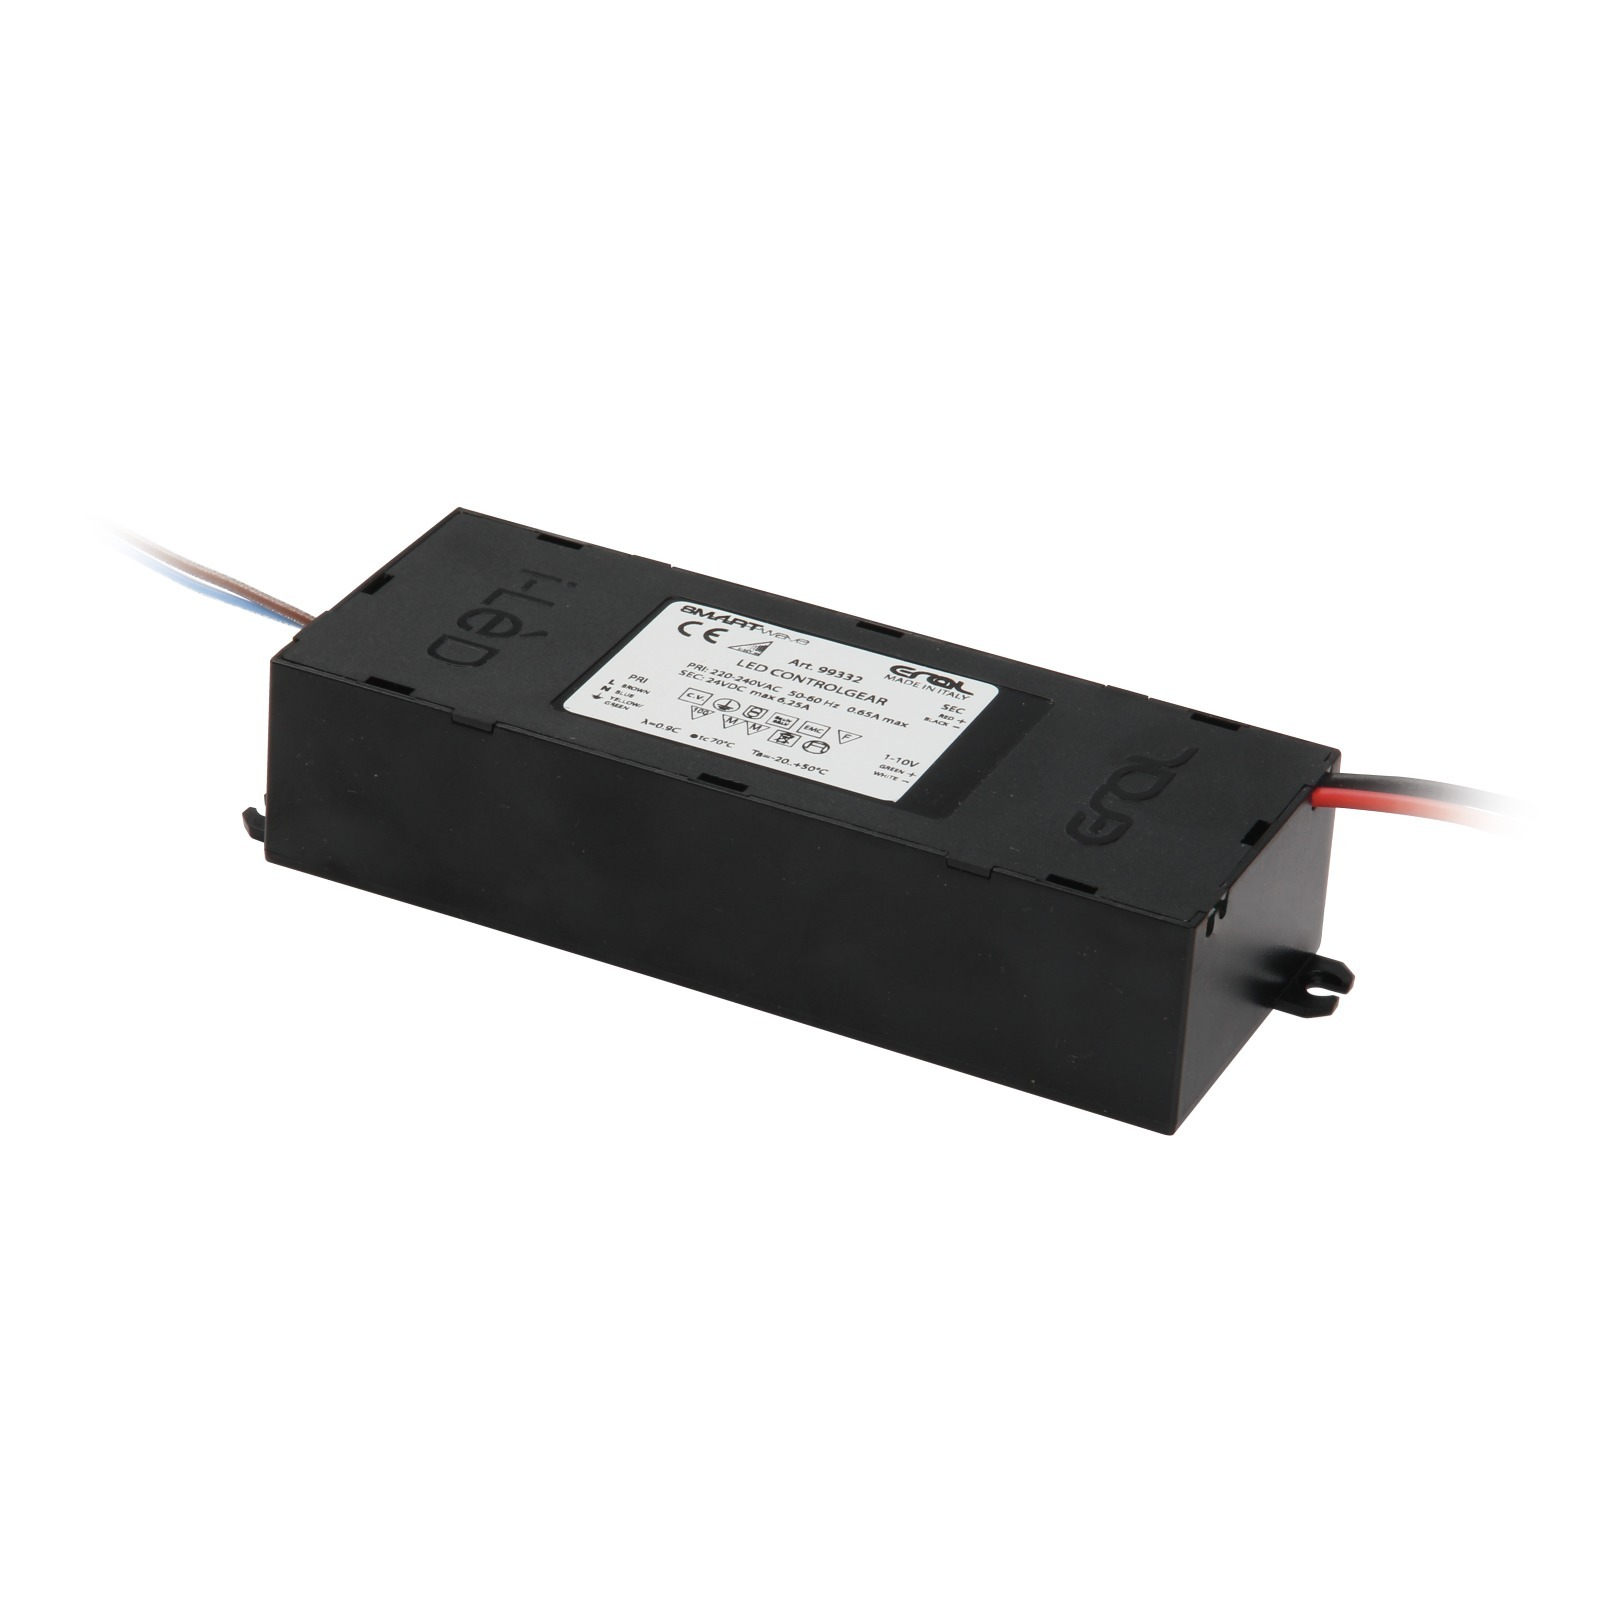 Reson_150 |   On/Off Driver 190~250V AC  150 W On/Off Driver